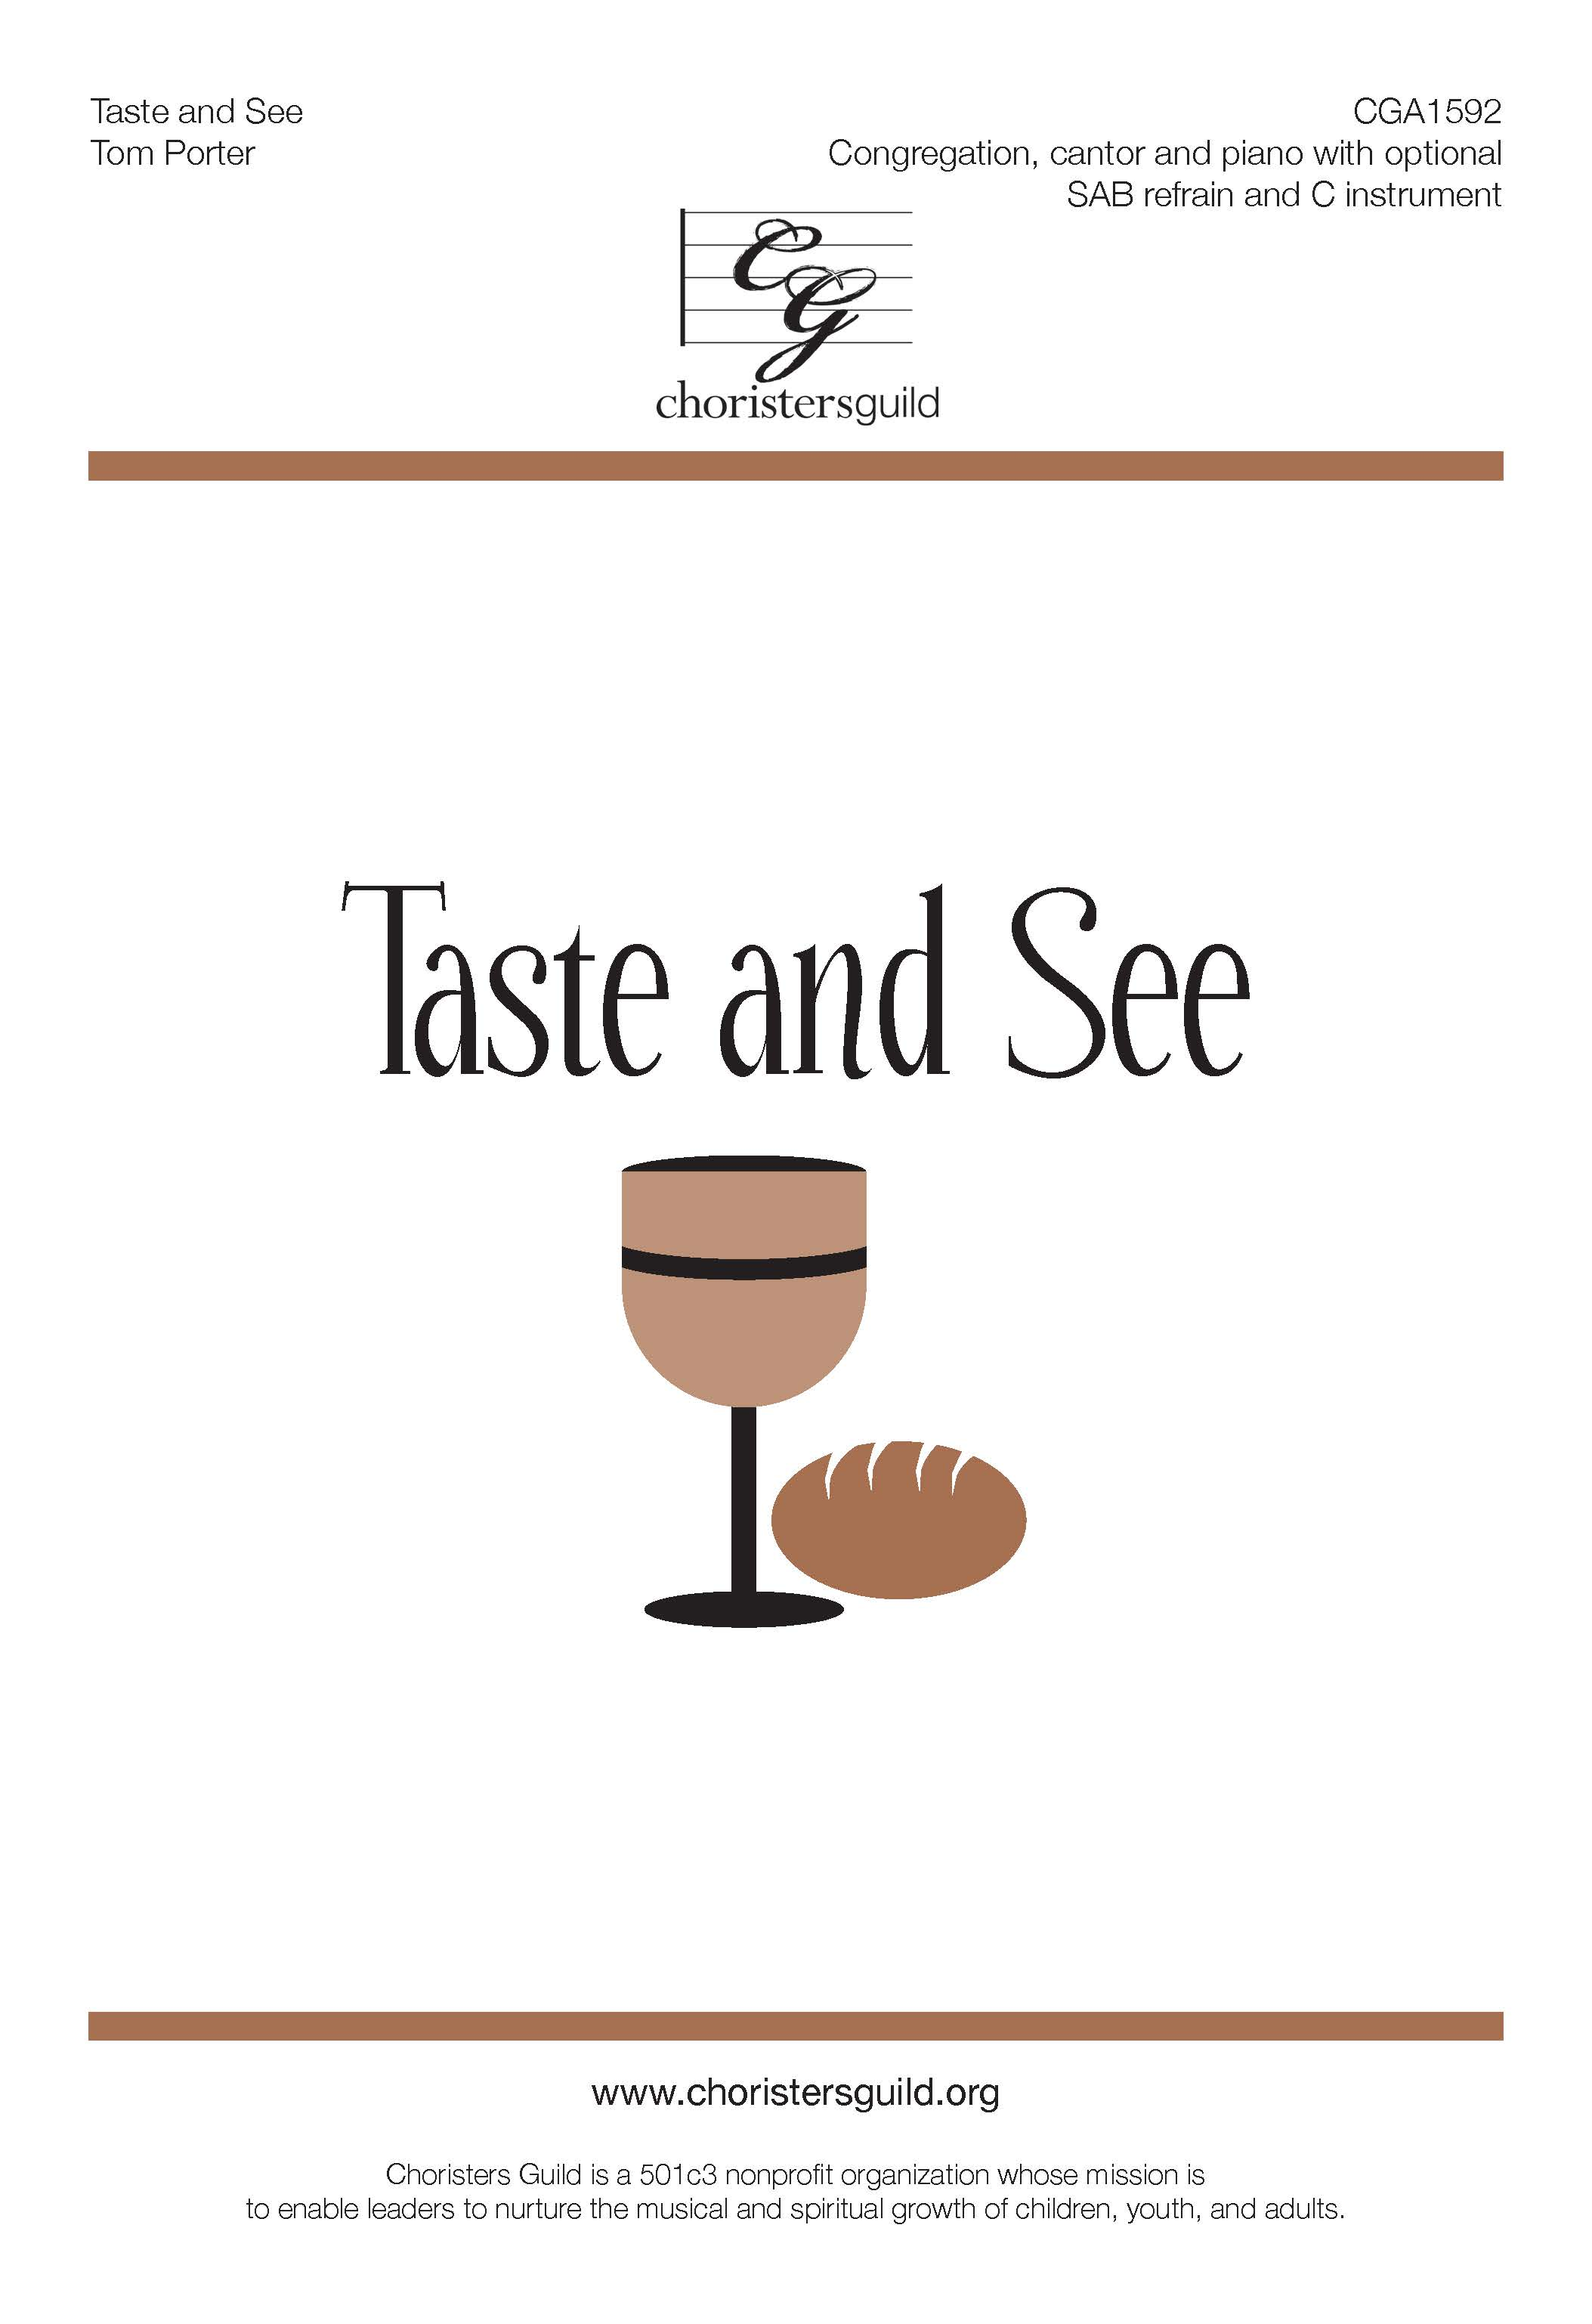 Taste and See - Cantor, SAB and Congregation